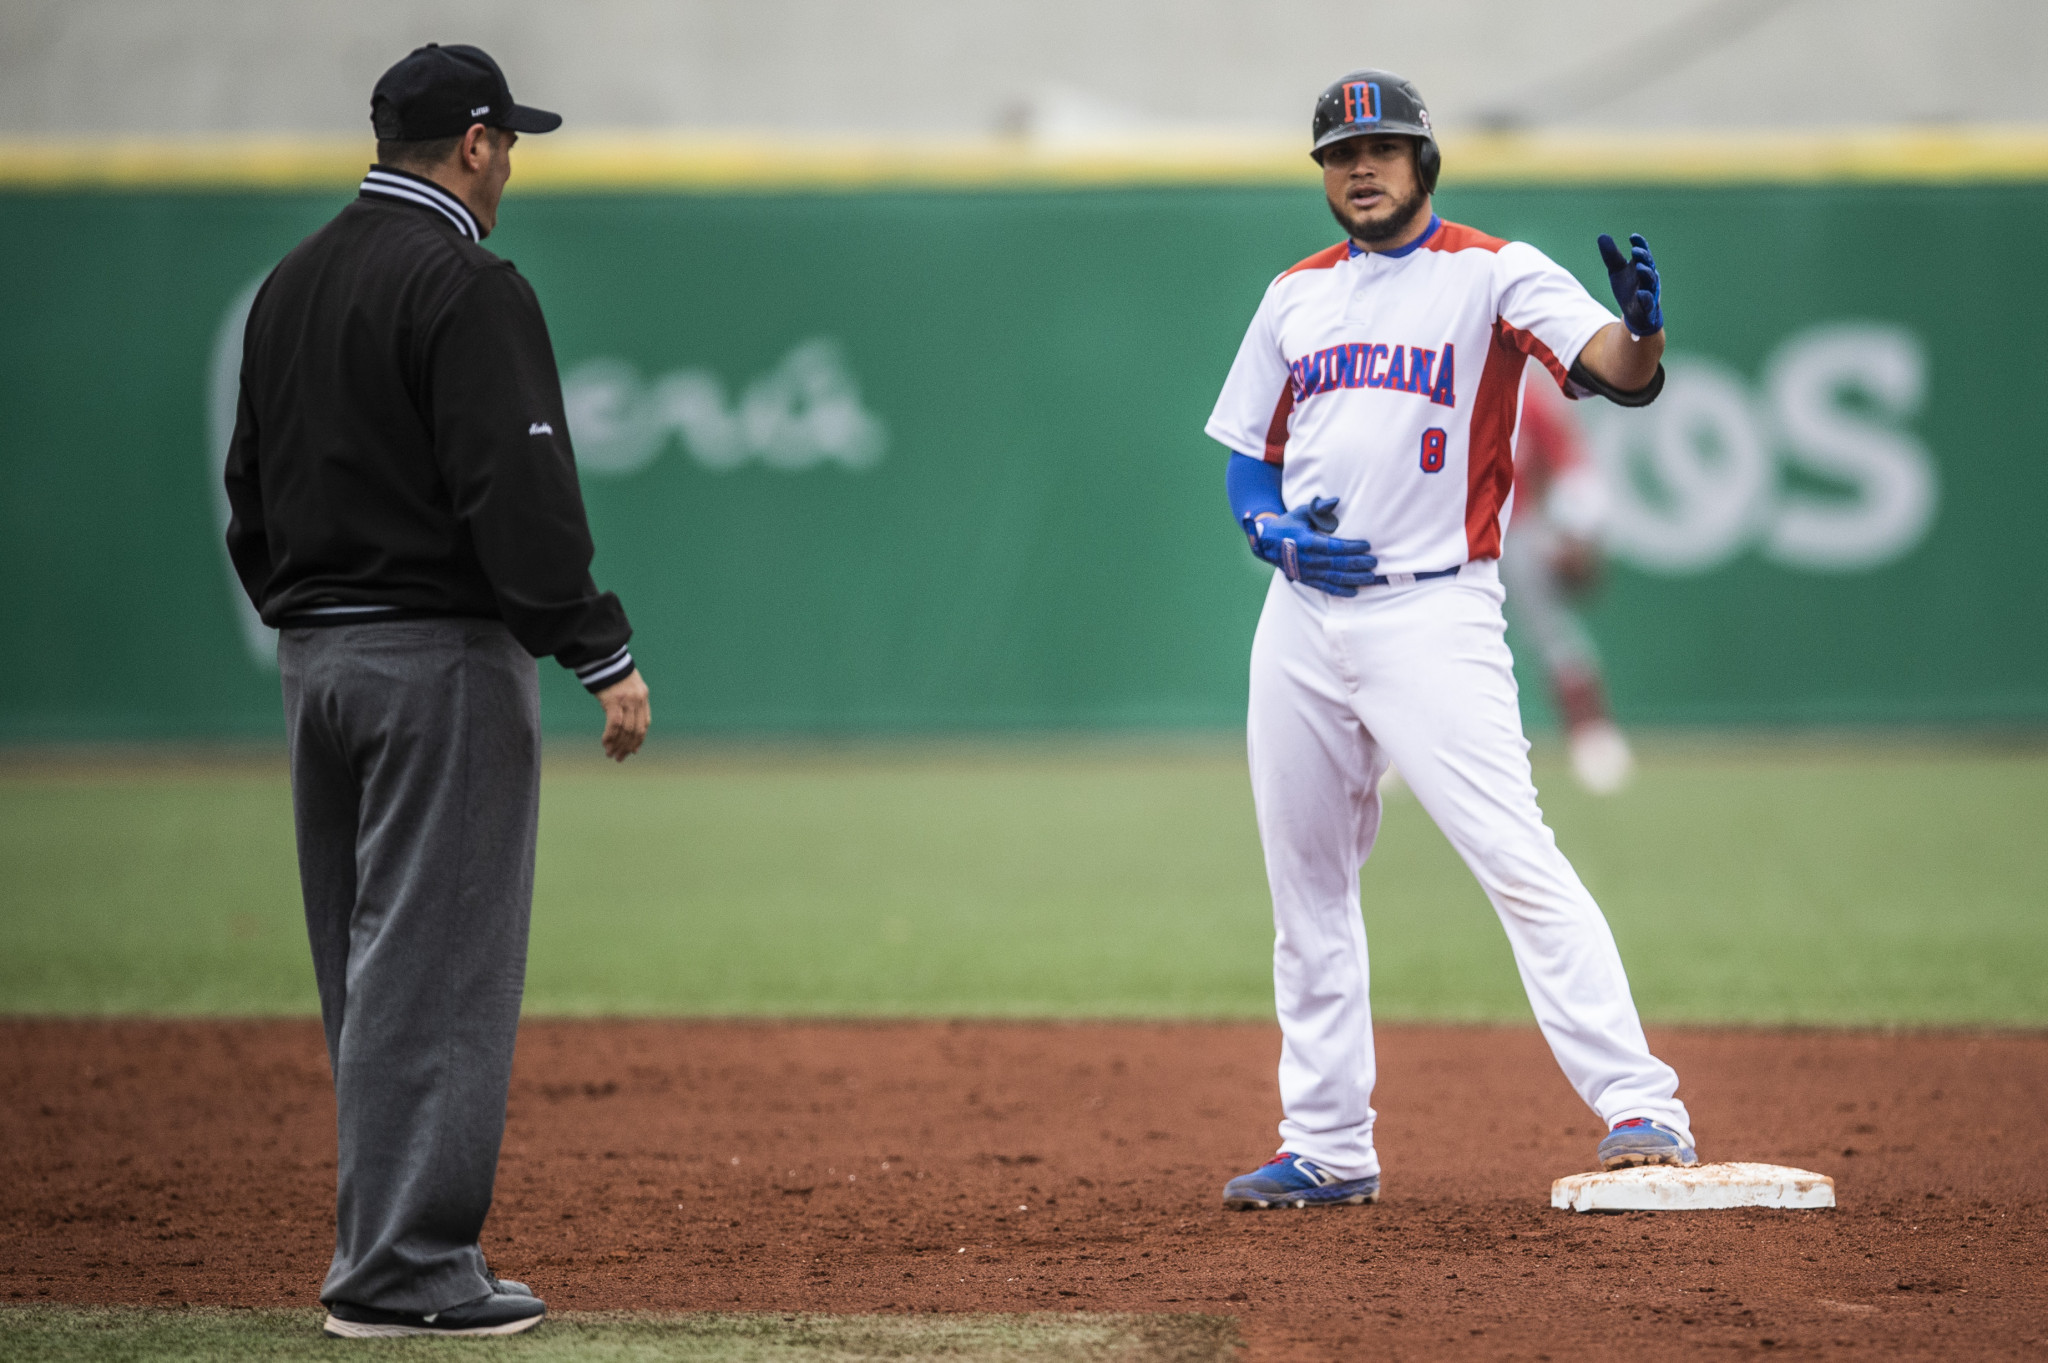 Dominican Republic finished in fifth place in the men's baseball tournament ©Getty Images